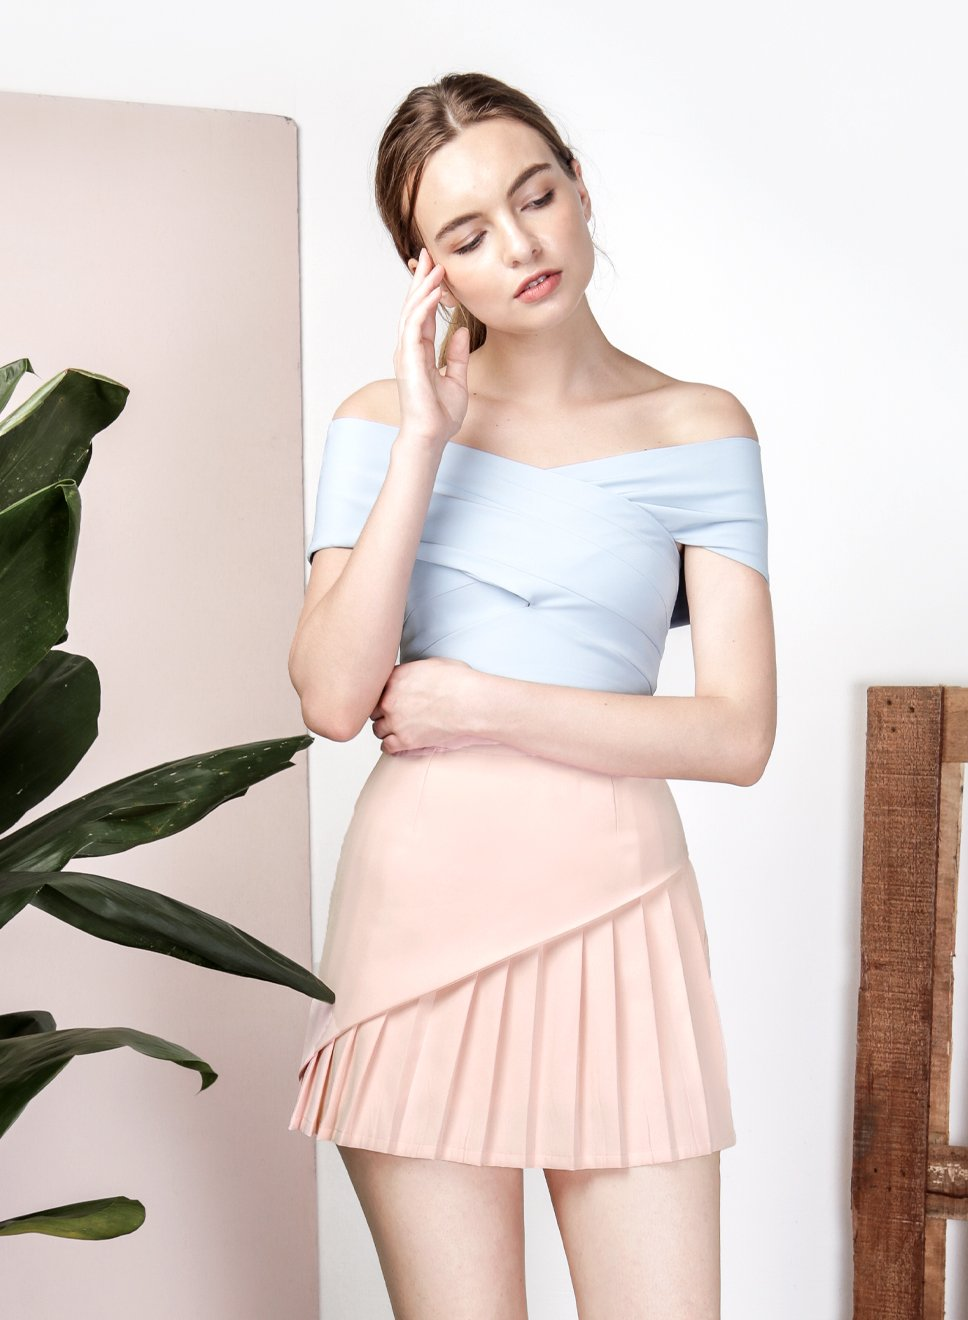 SAGE Overlap Pleat Skirt (Peach Rose) at $ 21.50 only sold at And Well Dressed Online Fashion Store Singapore